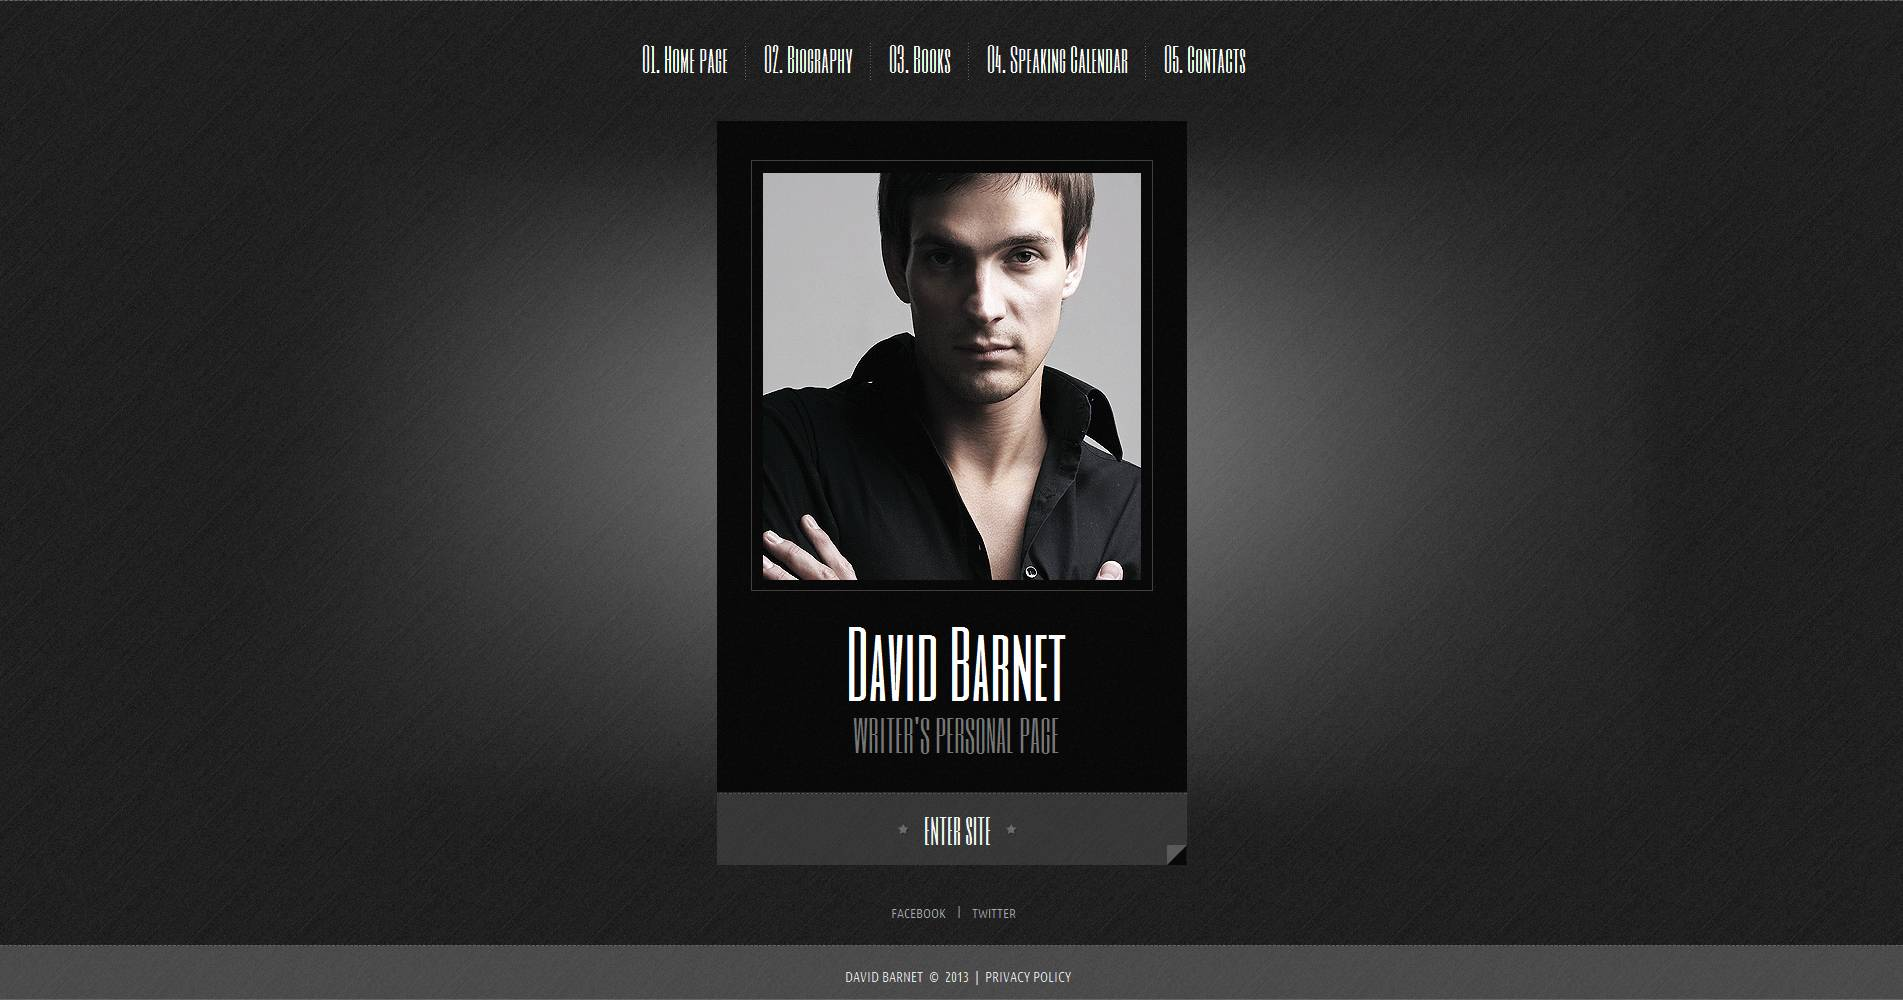 Personal Page Moto CMS HTML Template #45903